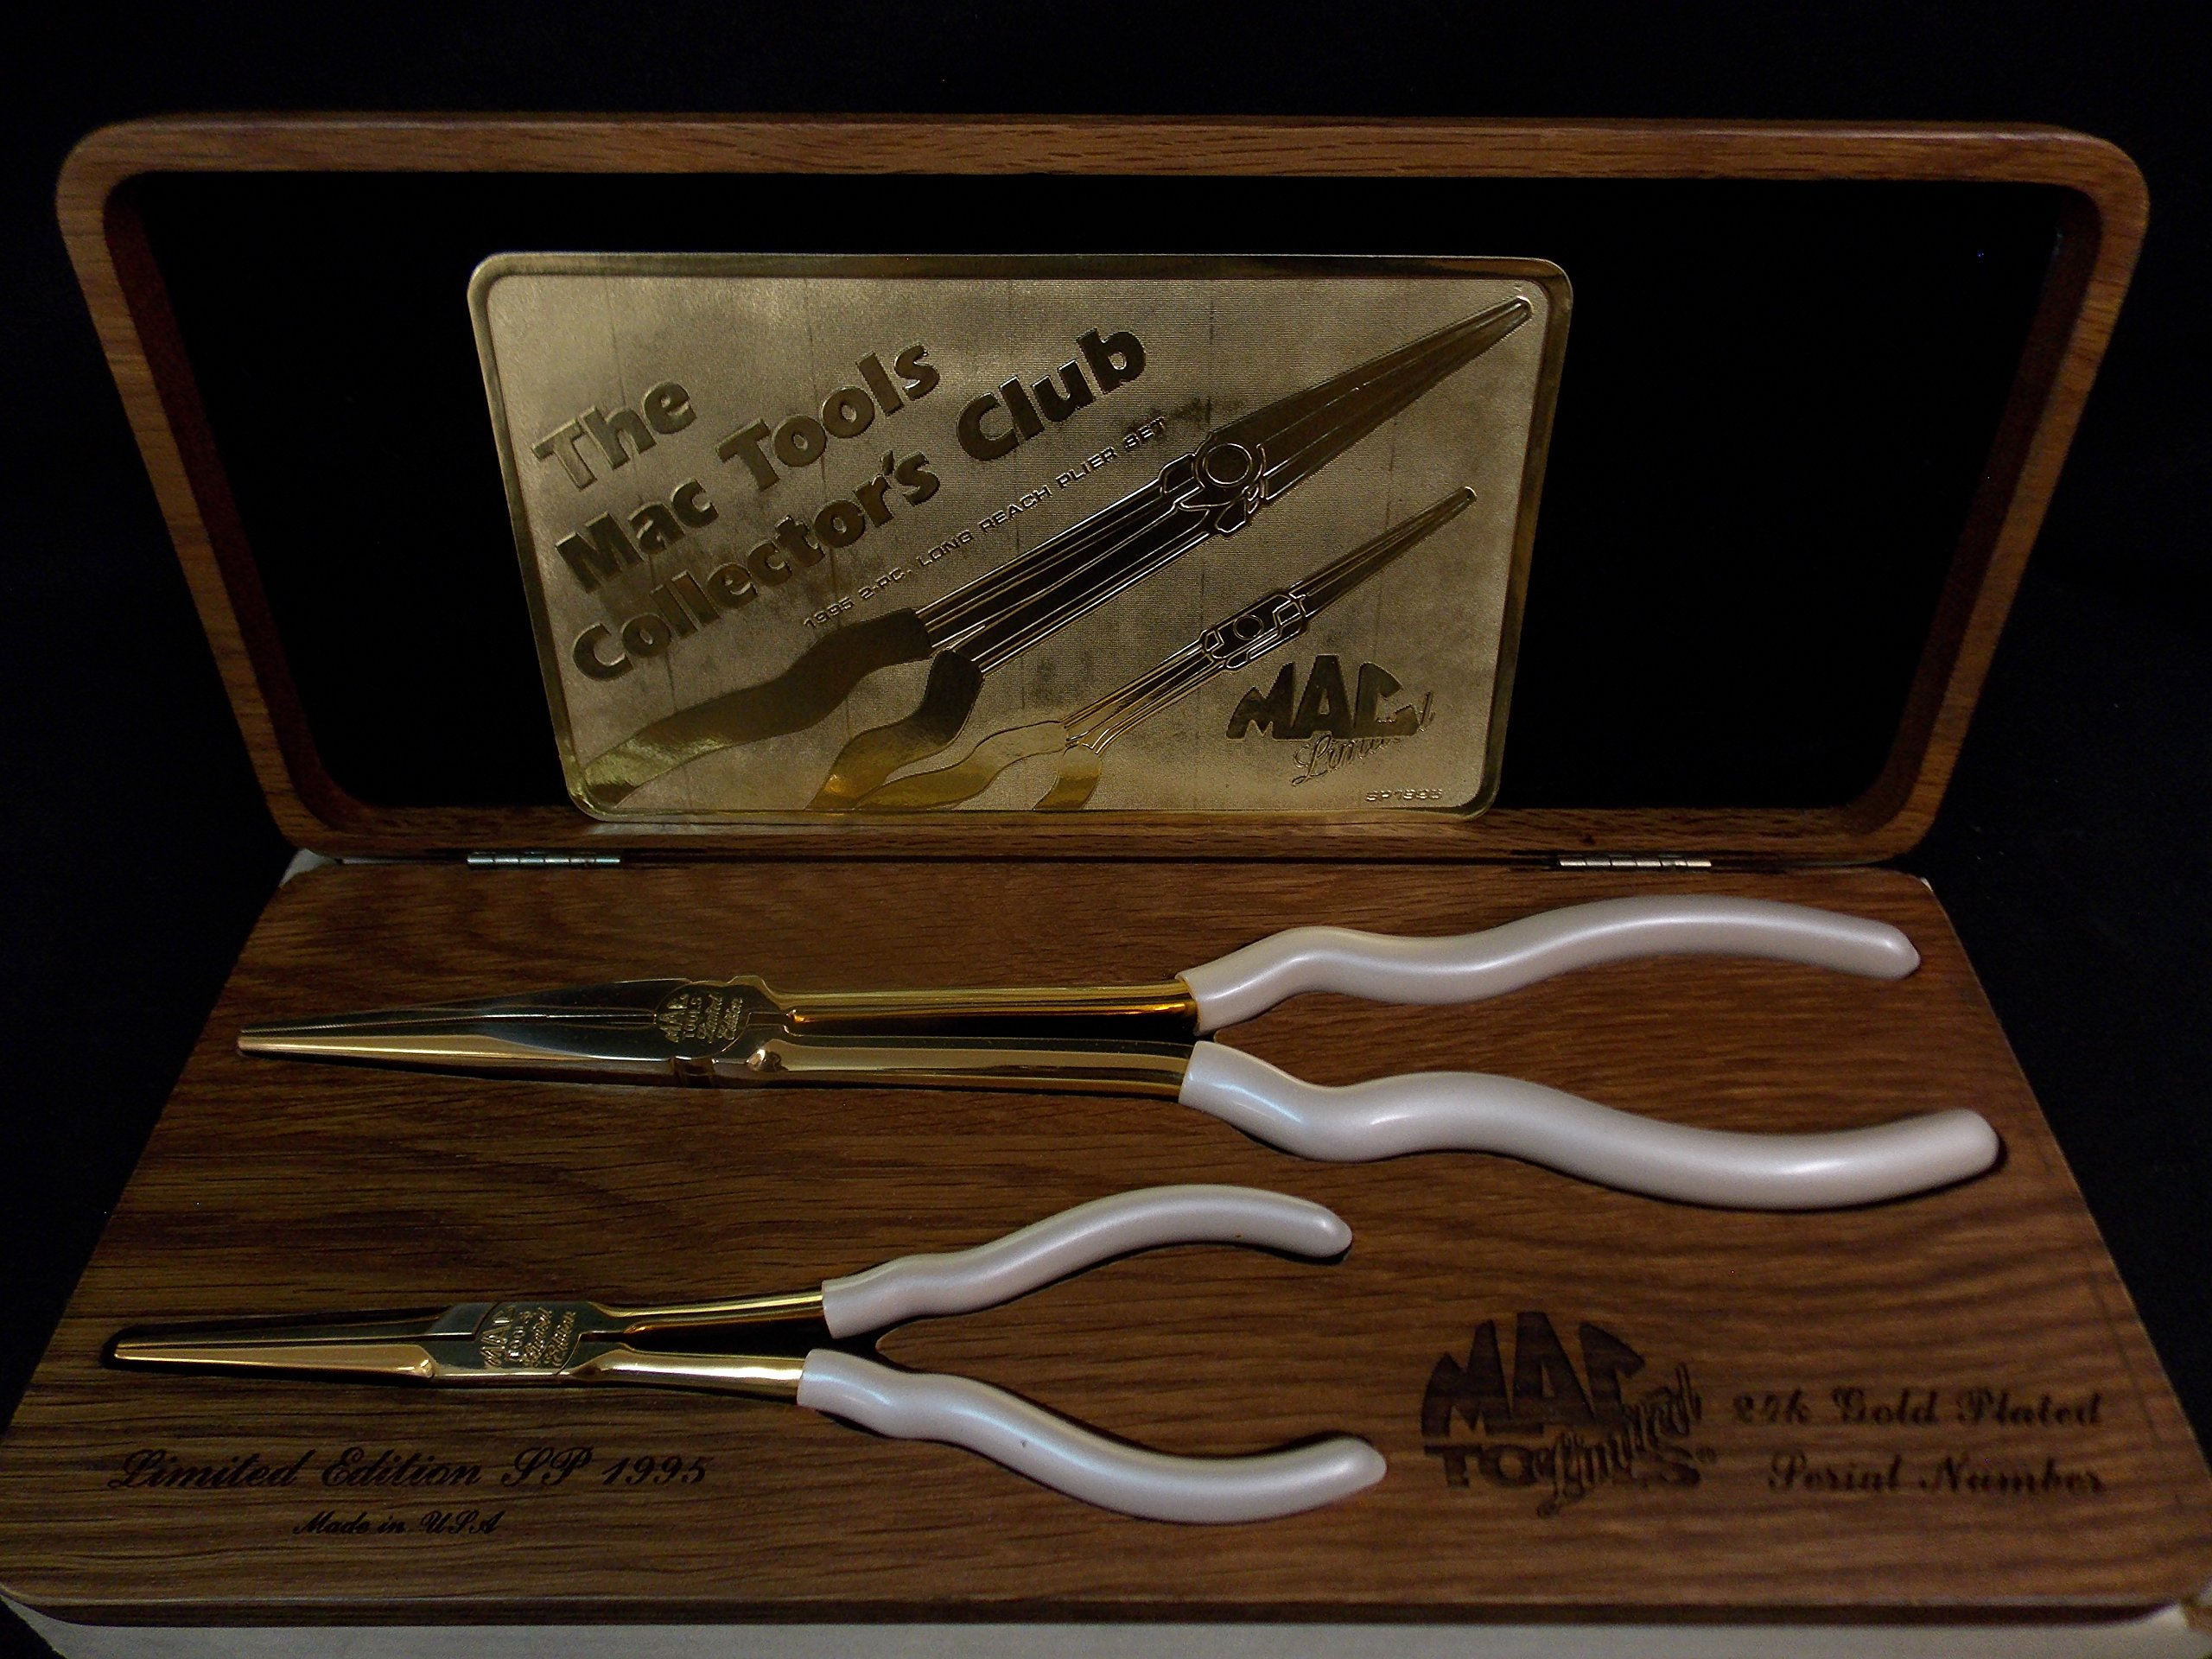 Mac Tools Limited 24 K Gold Plated Needle Nose Pliers (2), 1995 Made In USA, Vintage/Rare, Part #SP1995